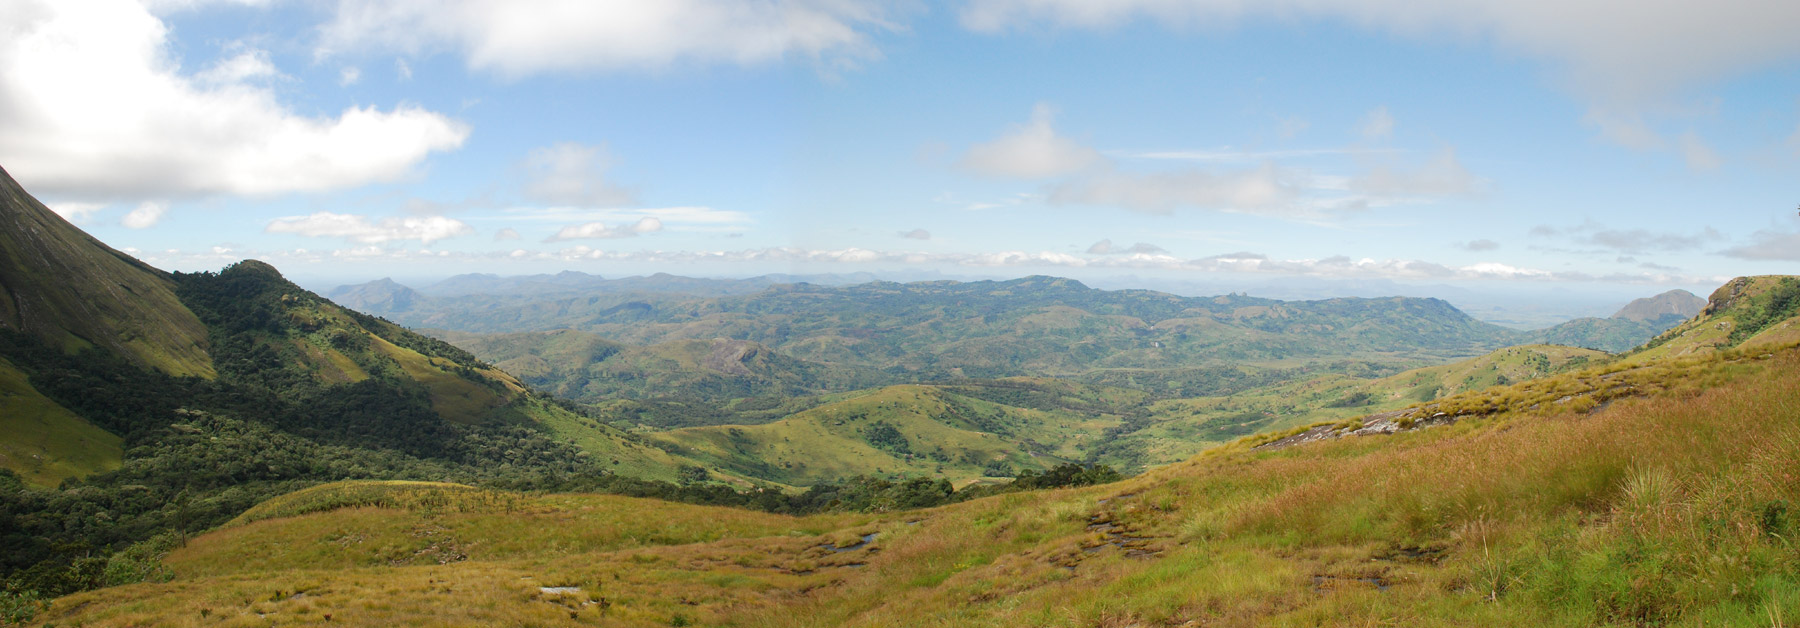 Panorama over Serra de Gurue from the base of Namuli peak.